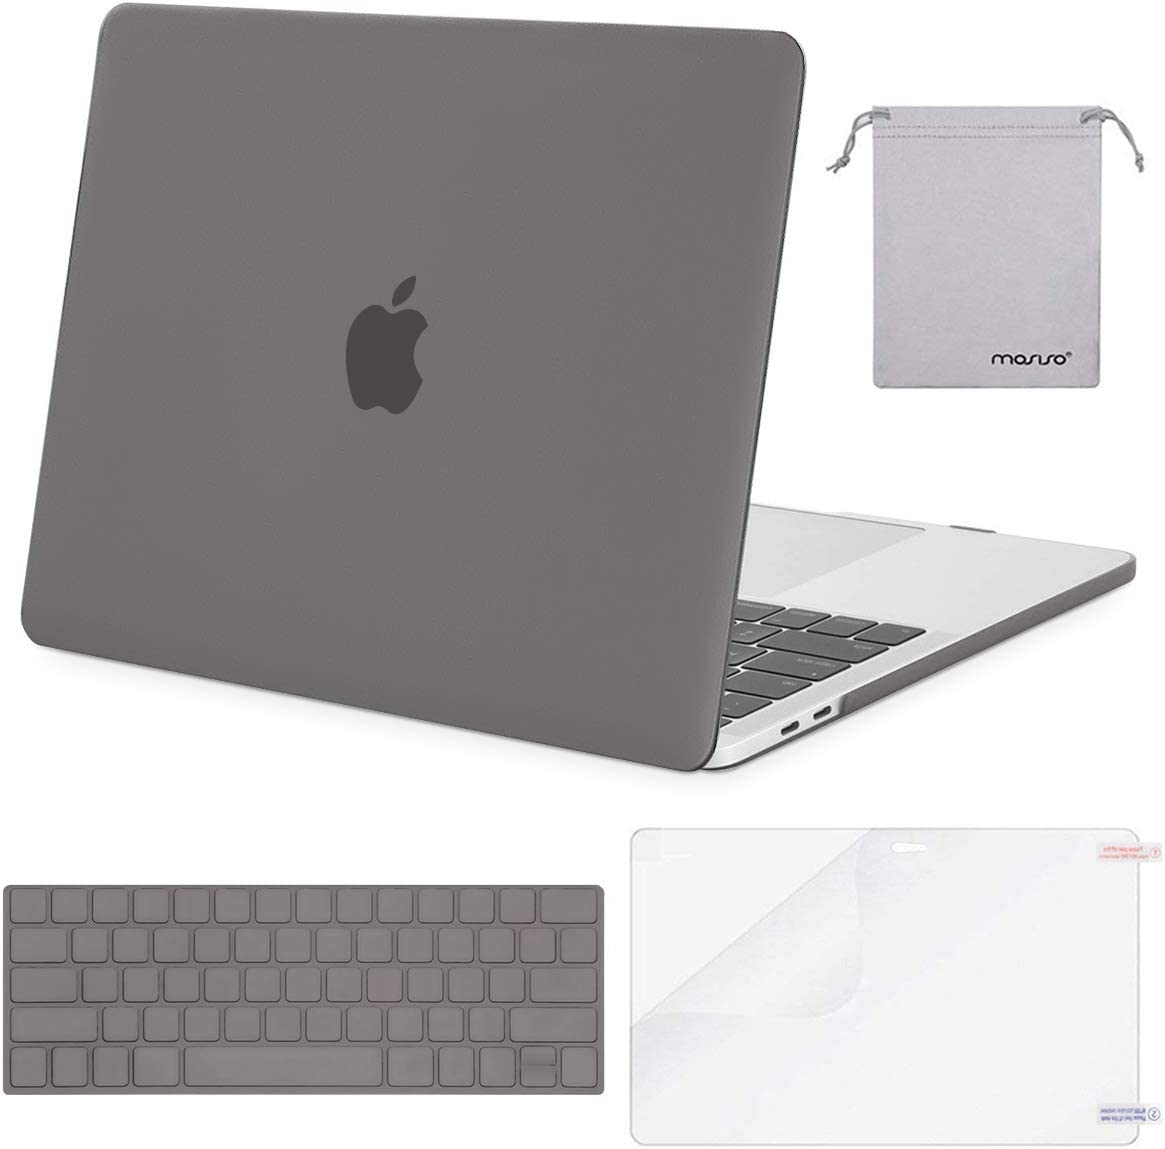 MOSISO MacBook Pro 13 inch Case 2019 2018 2017 2016 Release A2159 A1989 A1706 A1708, Plastic Hard Shell Case&Keyboard Cover&Screen Protector&Storage Bag Compatible with MacBook Pro 13, Gray